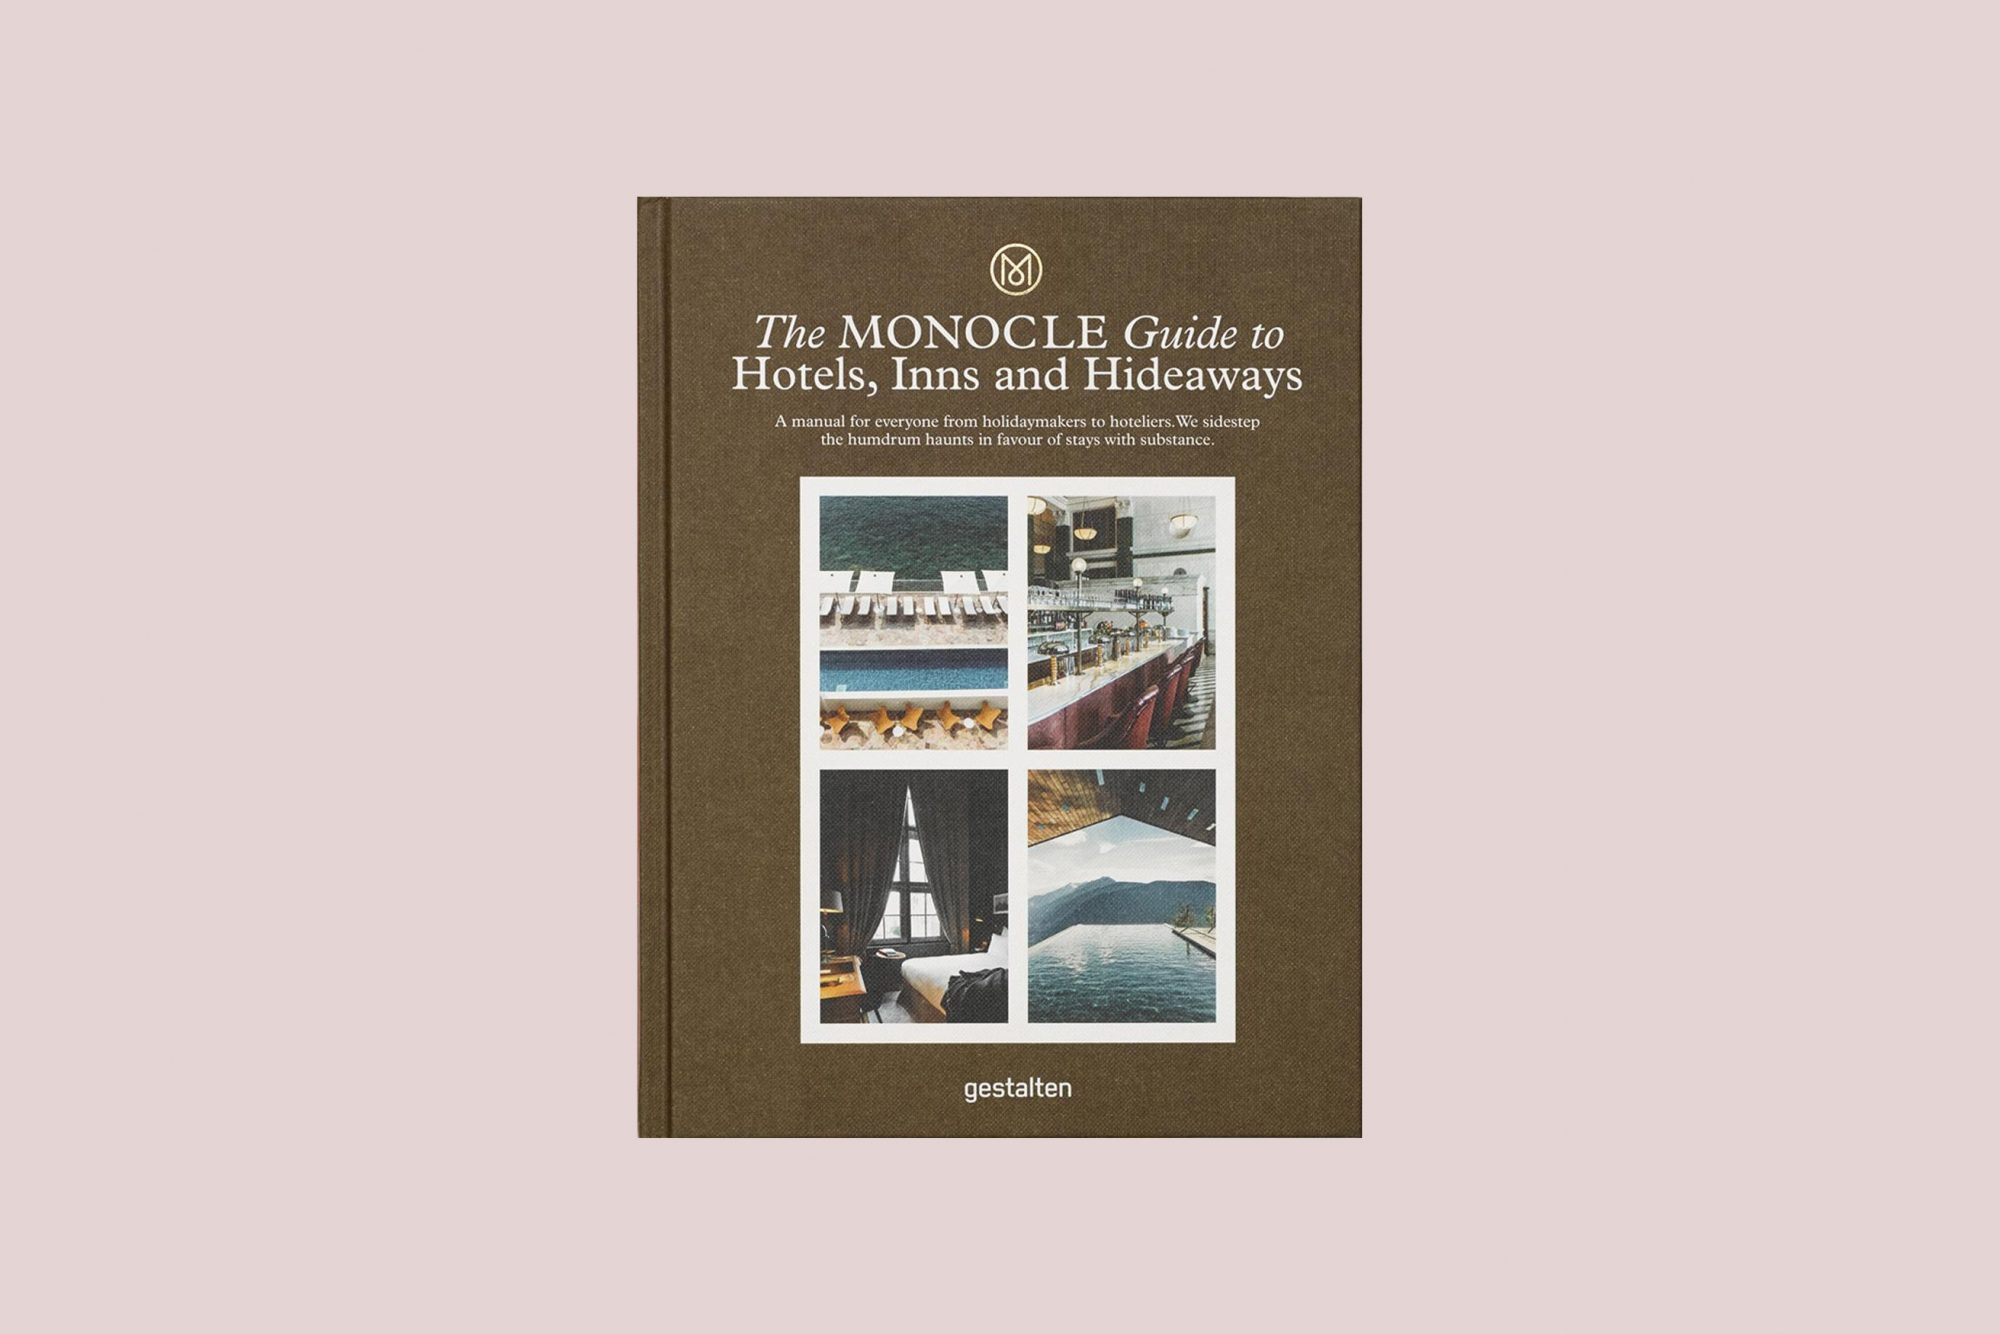 The Monocle Guide to Hotels, Inns, and Hideaways